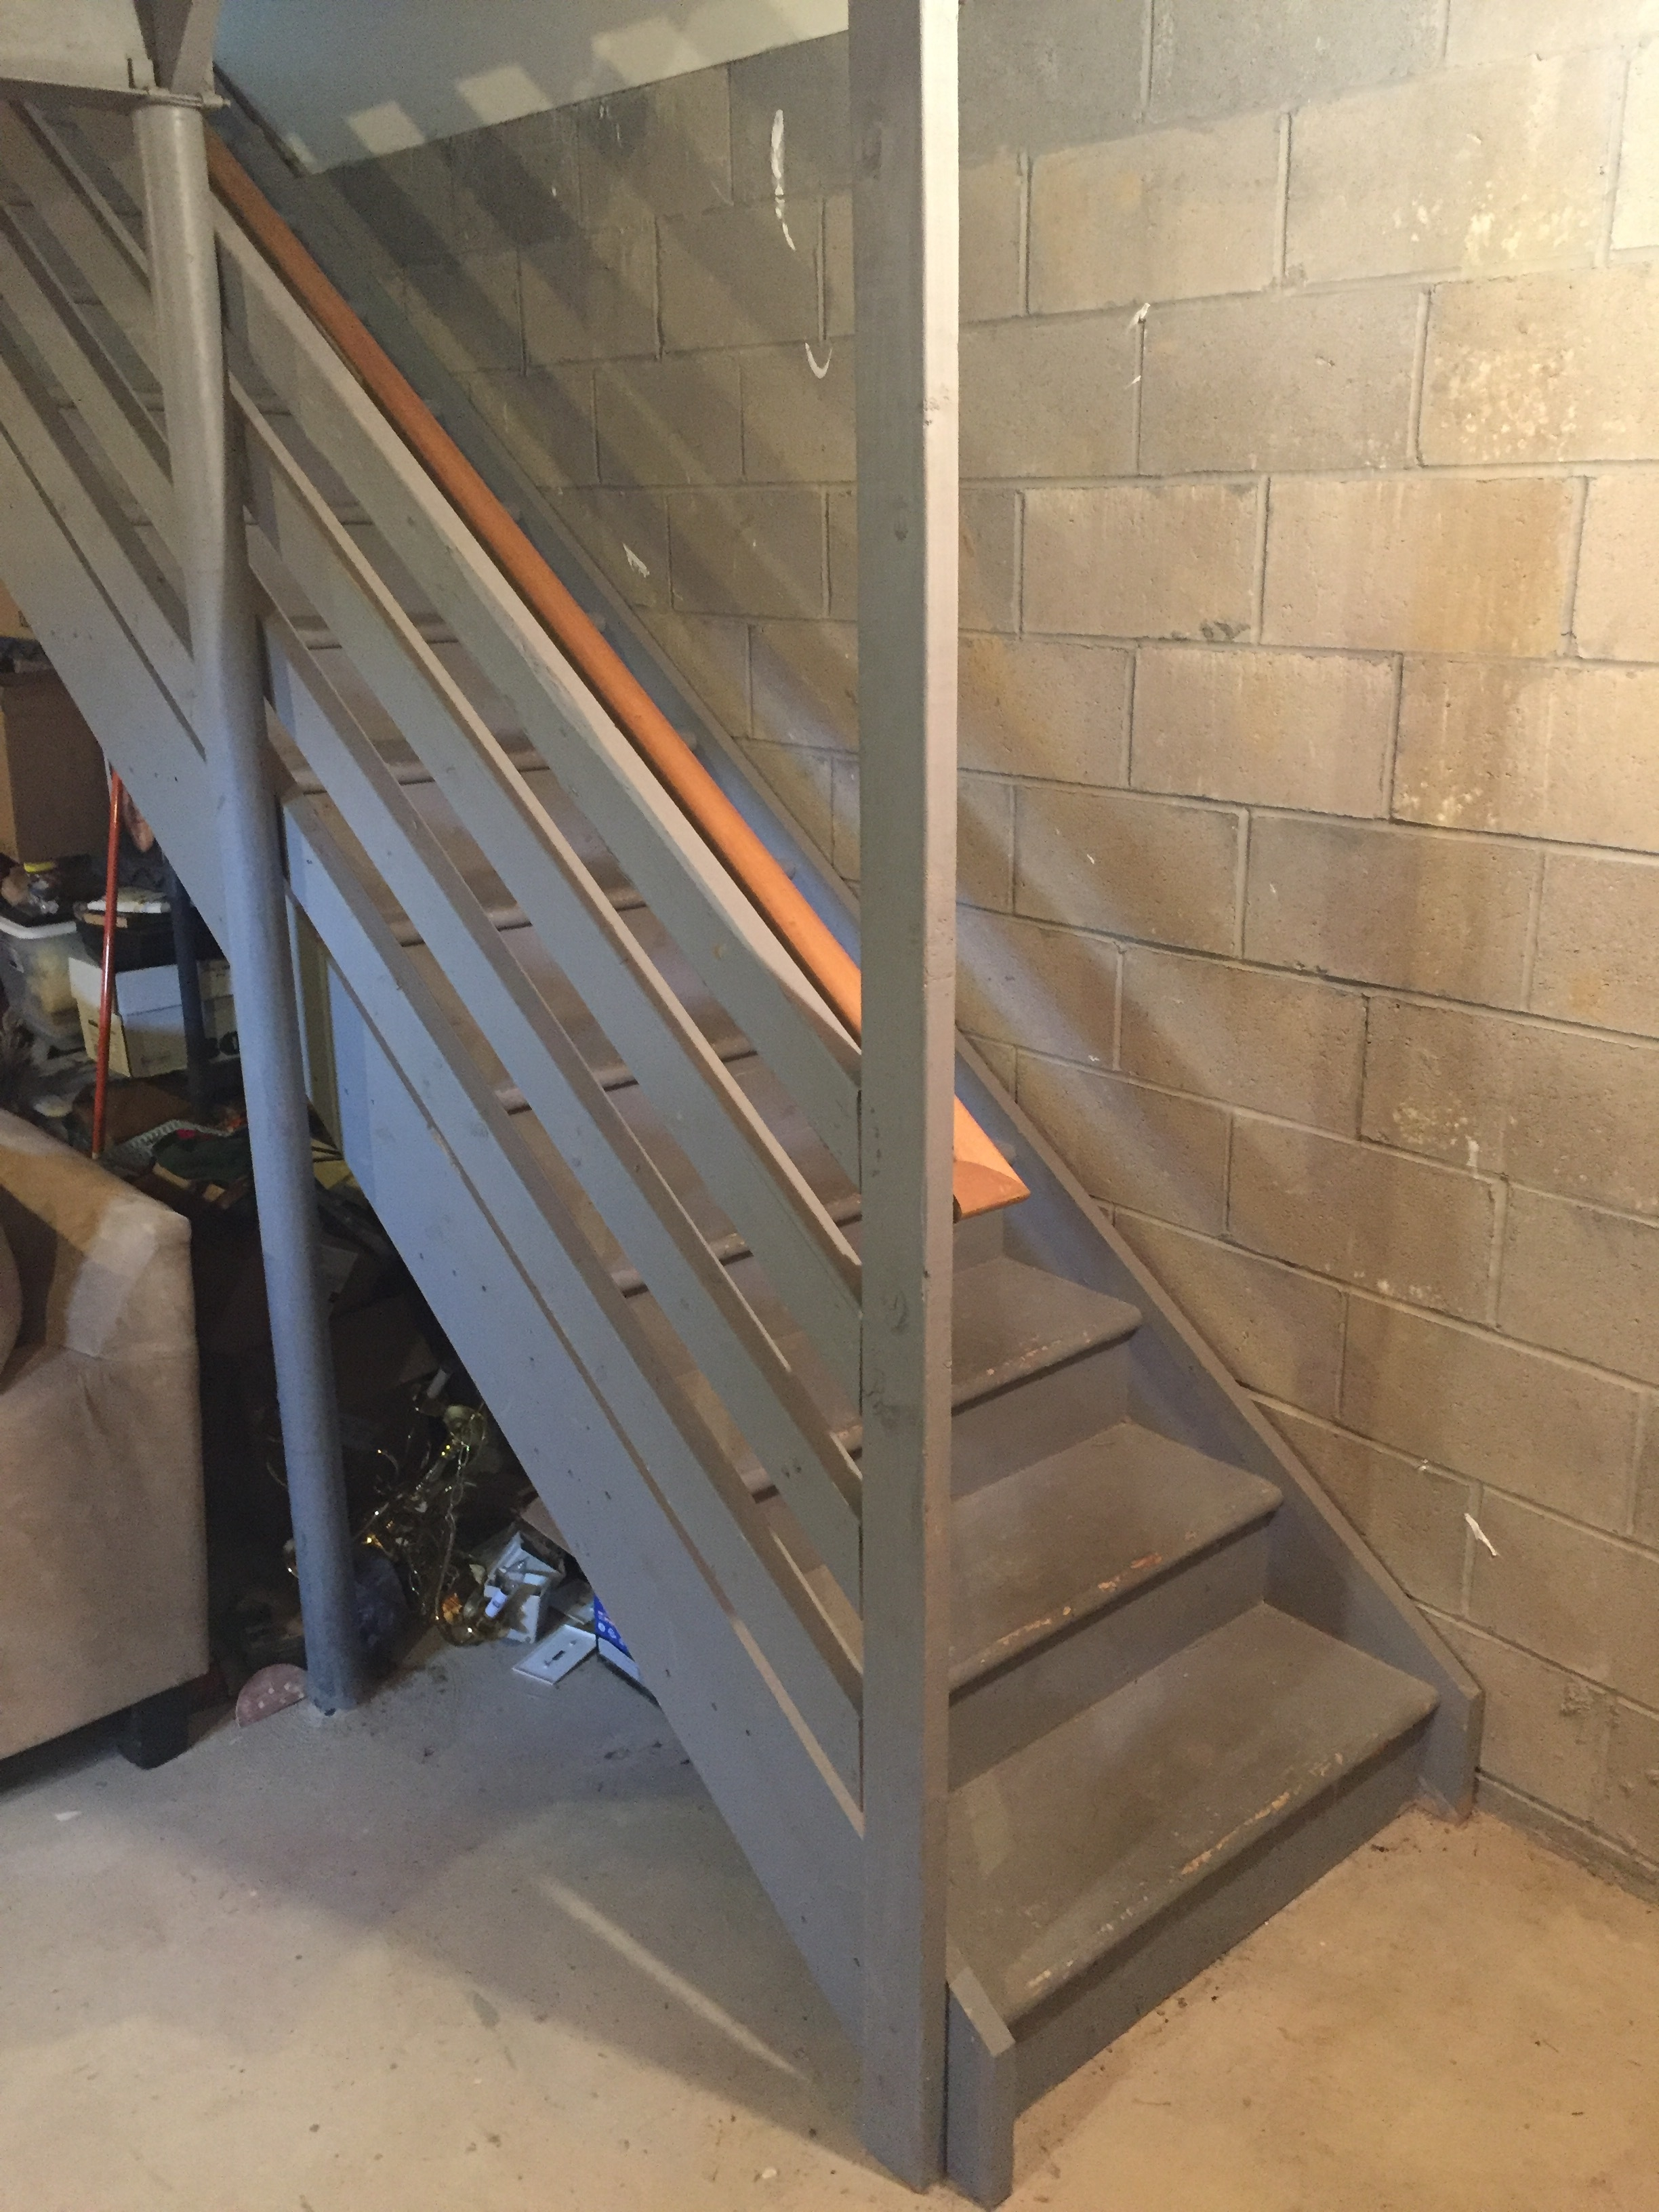 Staircase Remodel Diy Basement Stair Transformation — Revival | 2X4 Railing For Stairs | Solid Wood | 6 Foot | Stairway | Temporary | Natural Hardwood